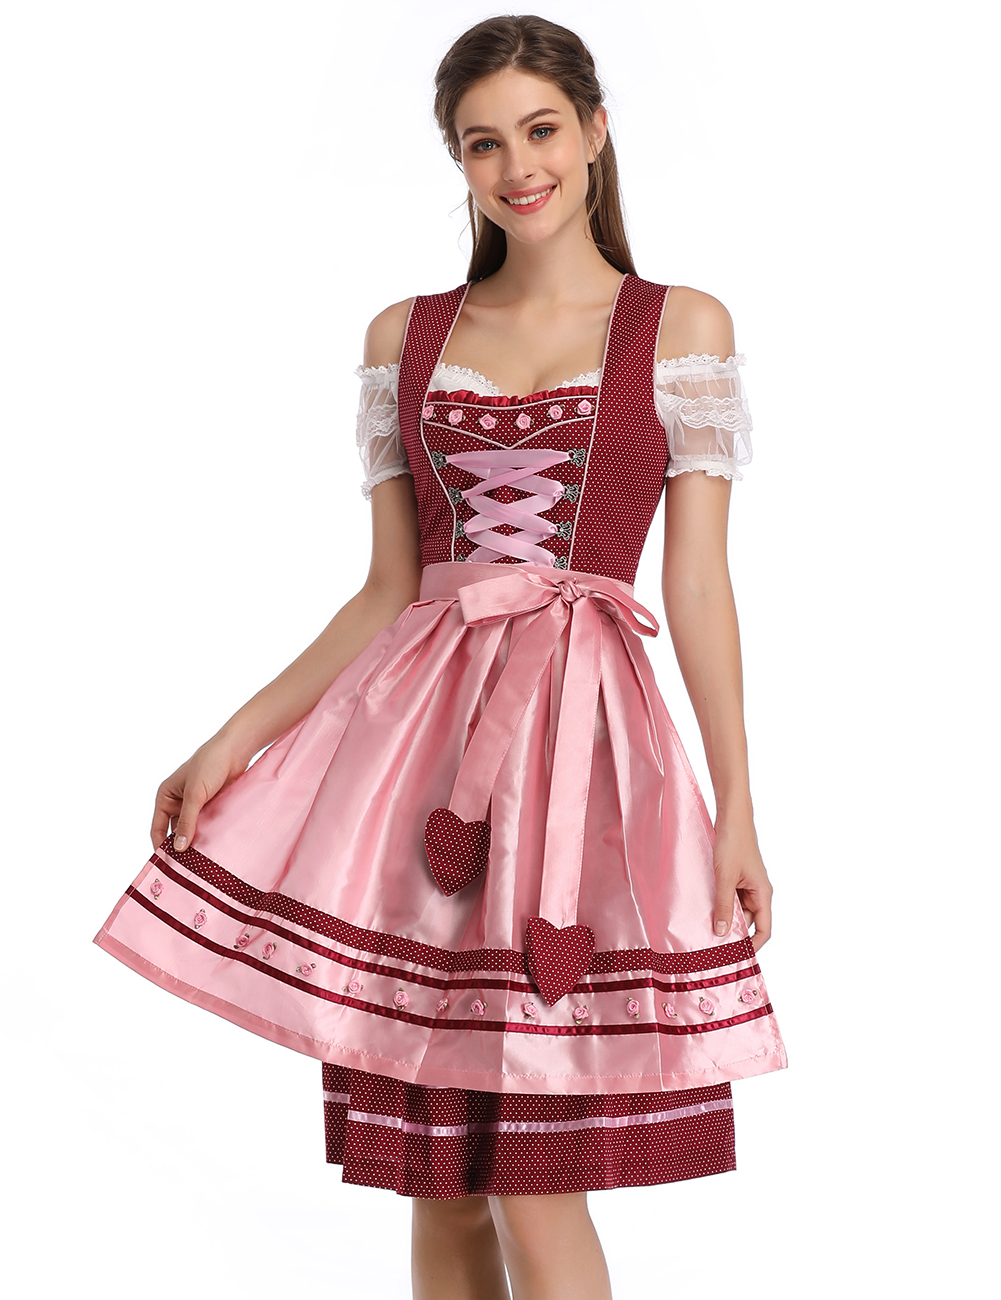 Kojooin Women's Traditional German Dirndl Dress for Bavarian Oktoberfest Party Festival Halloween Carnival